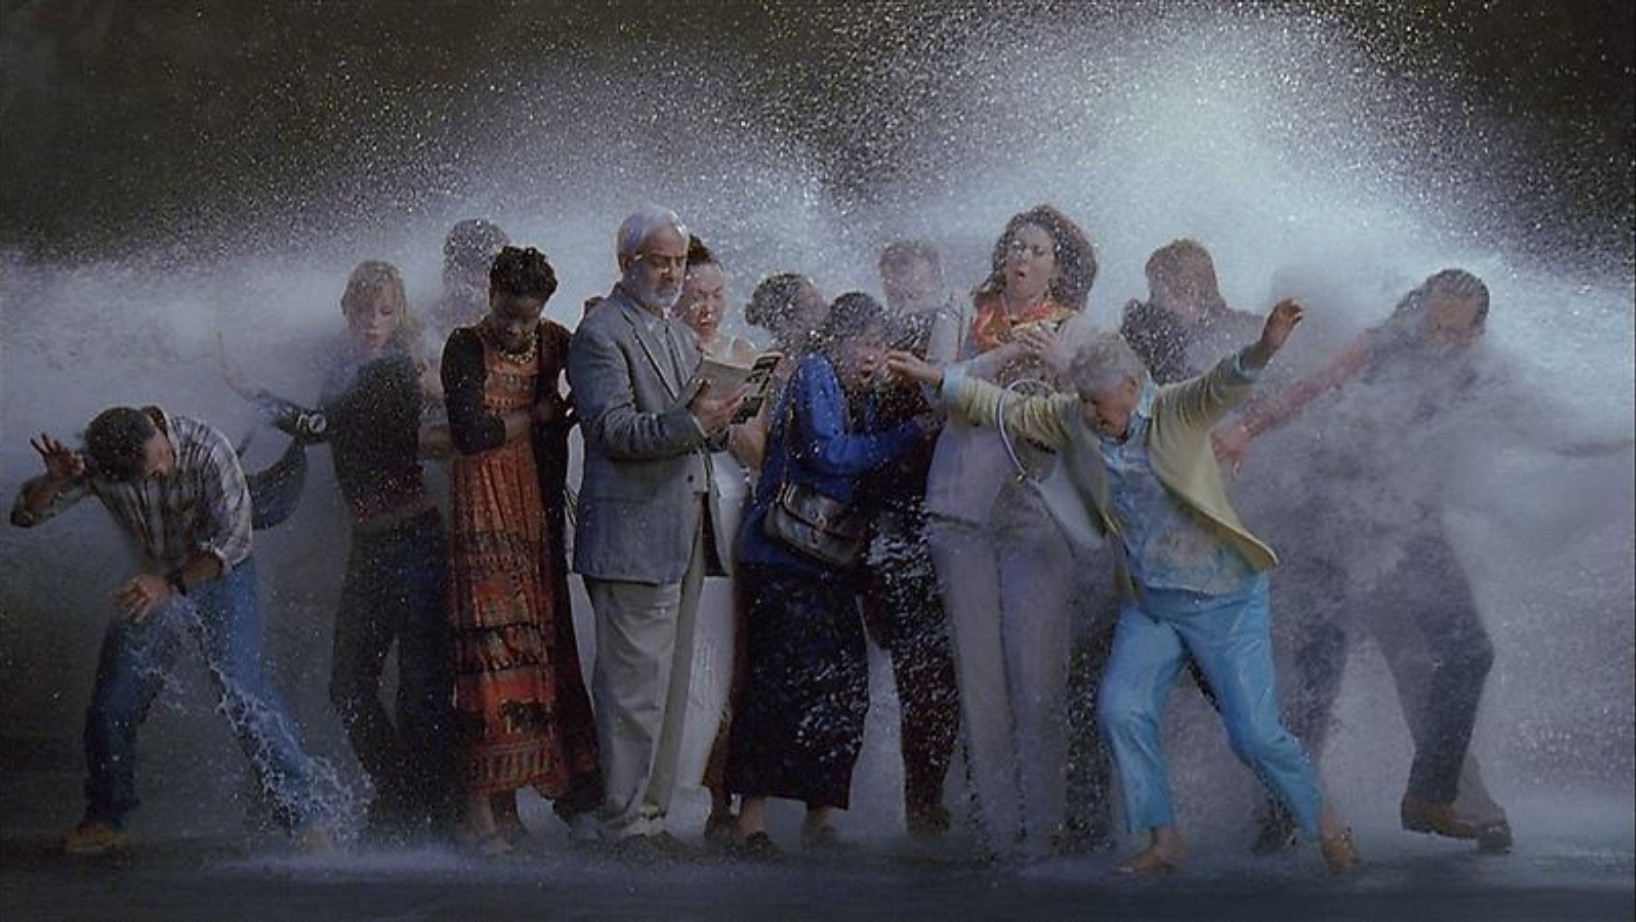 Bill Viola - Tempest - Study for the Raft